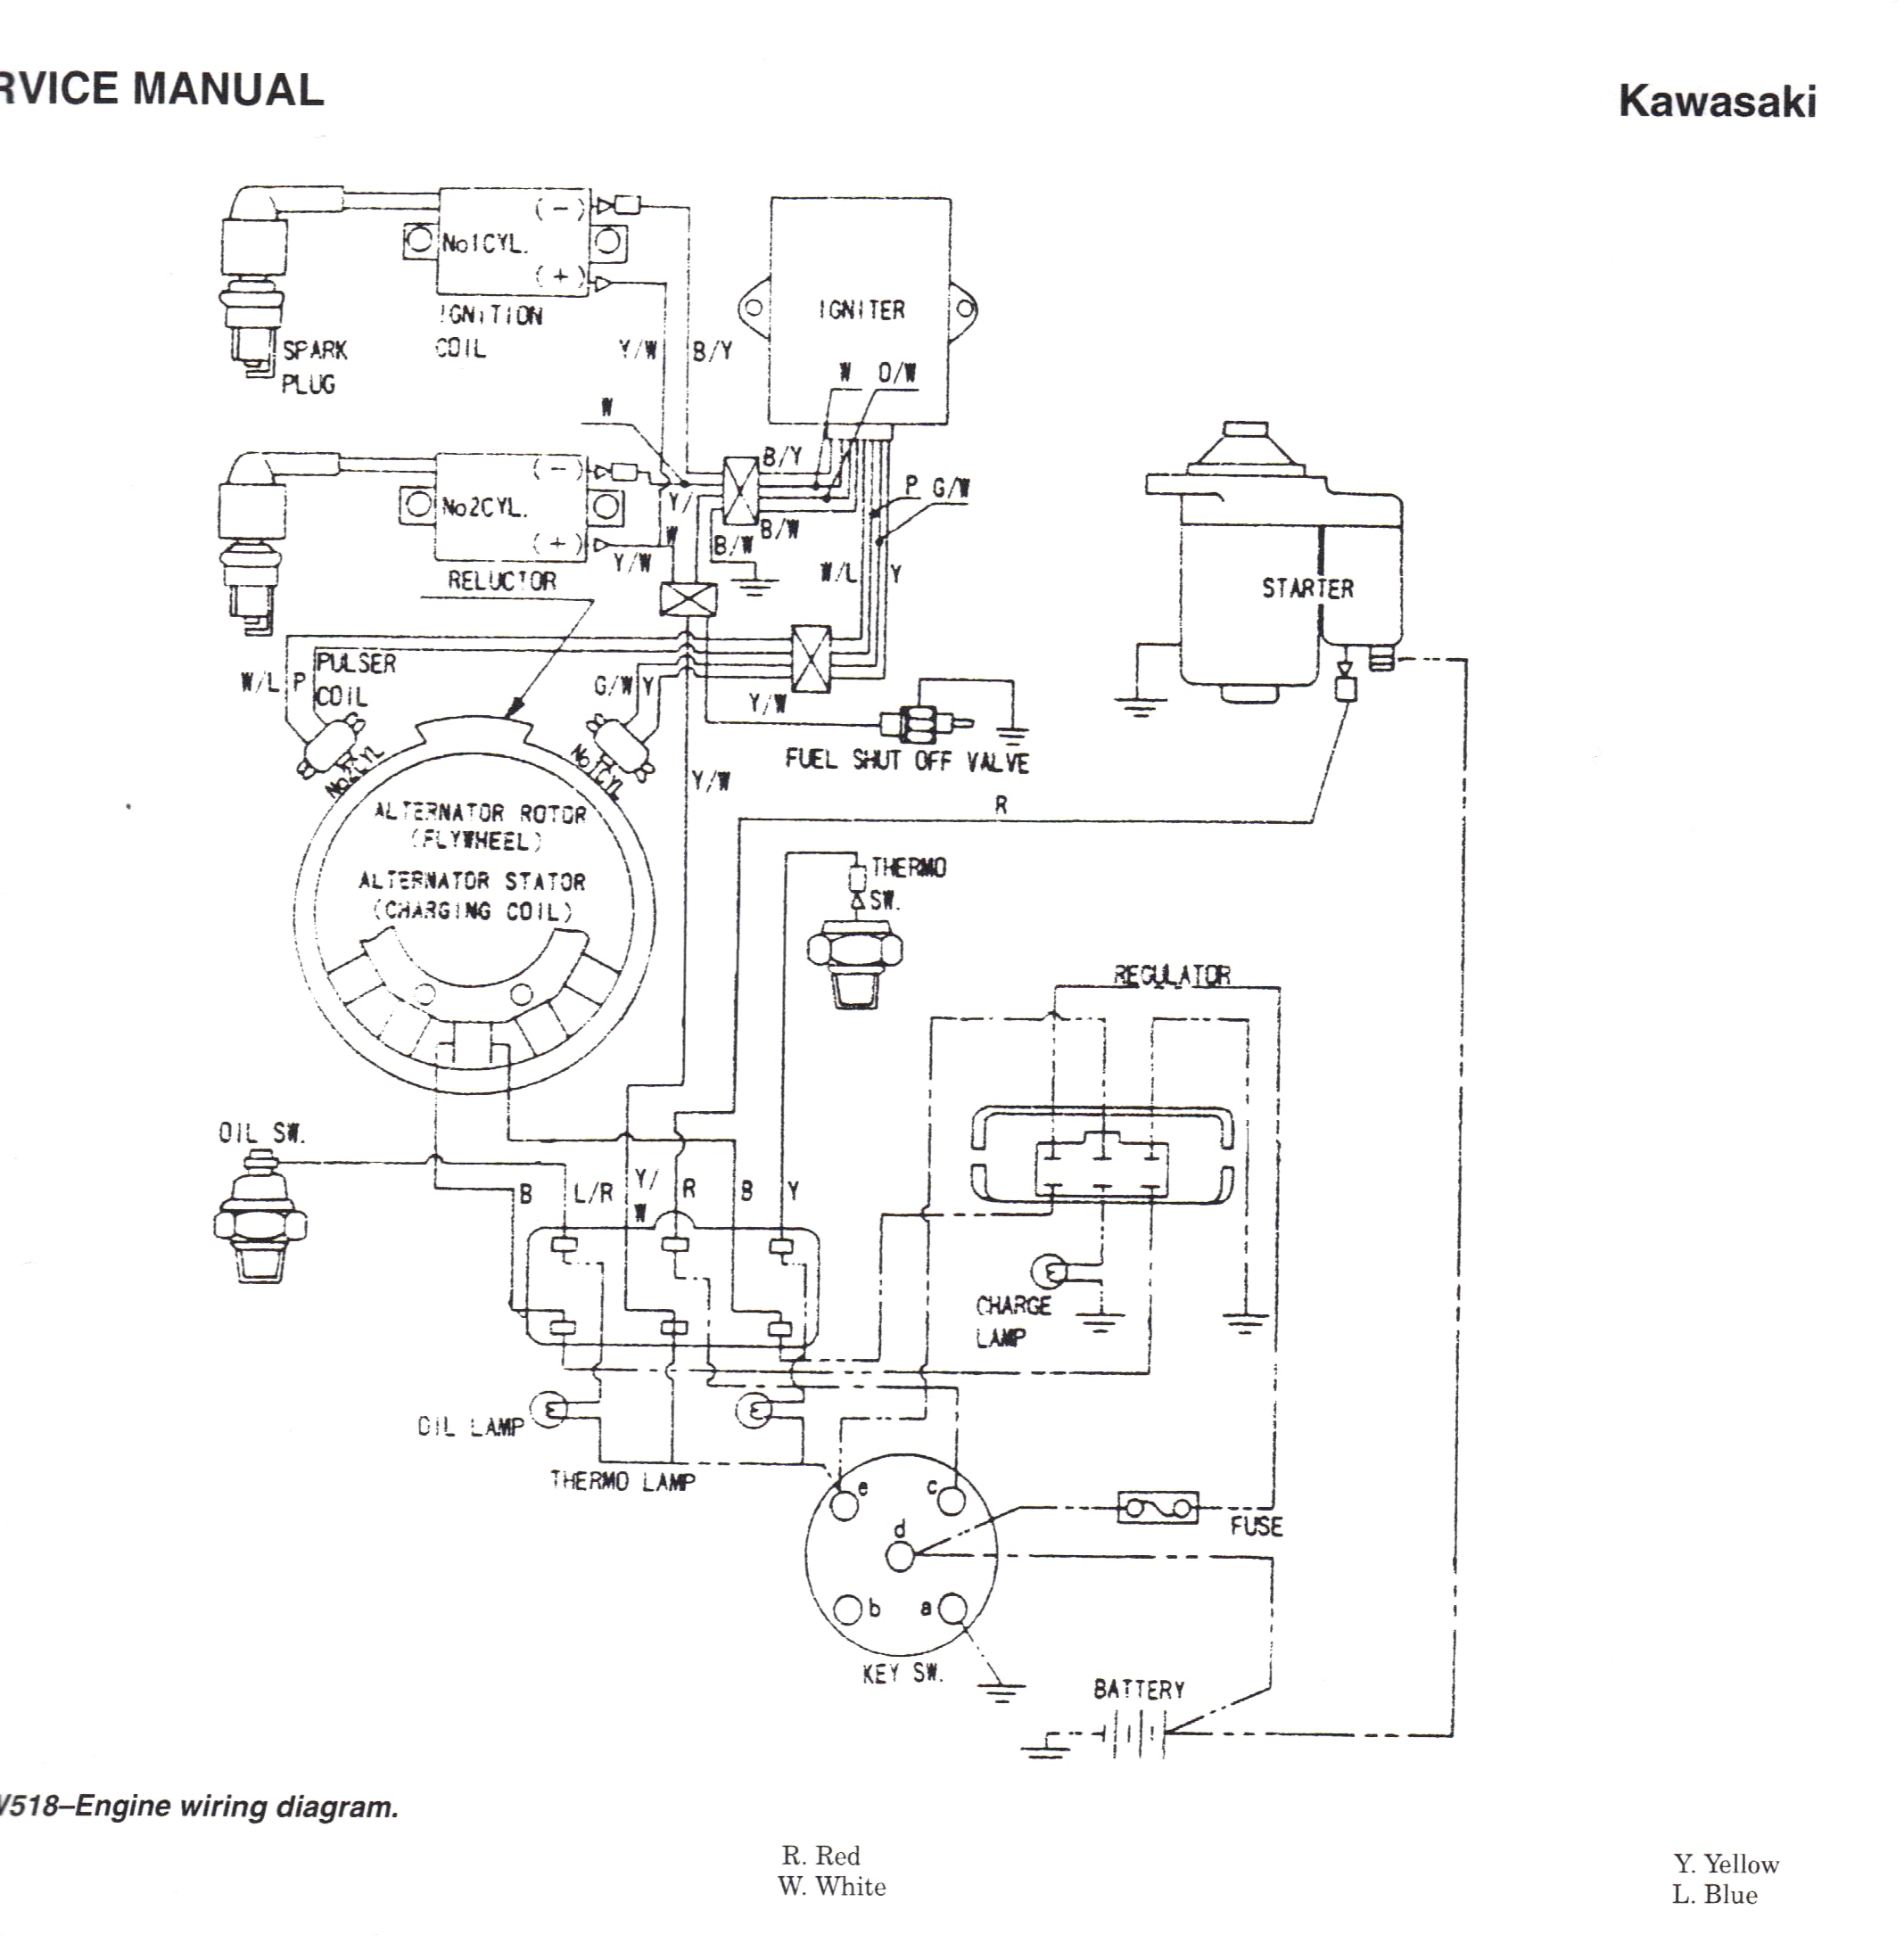 John Deere La135 Wiring Diagram | Wiring Diagram - John Deere Wiring Diagram Download